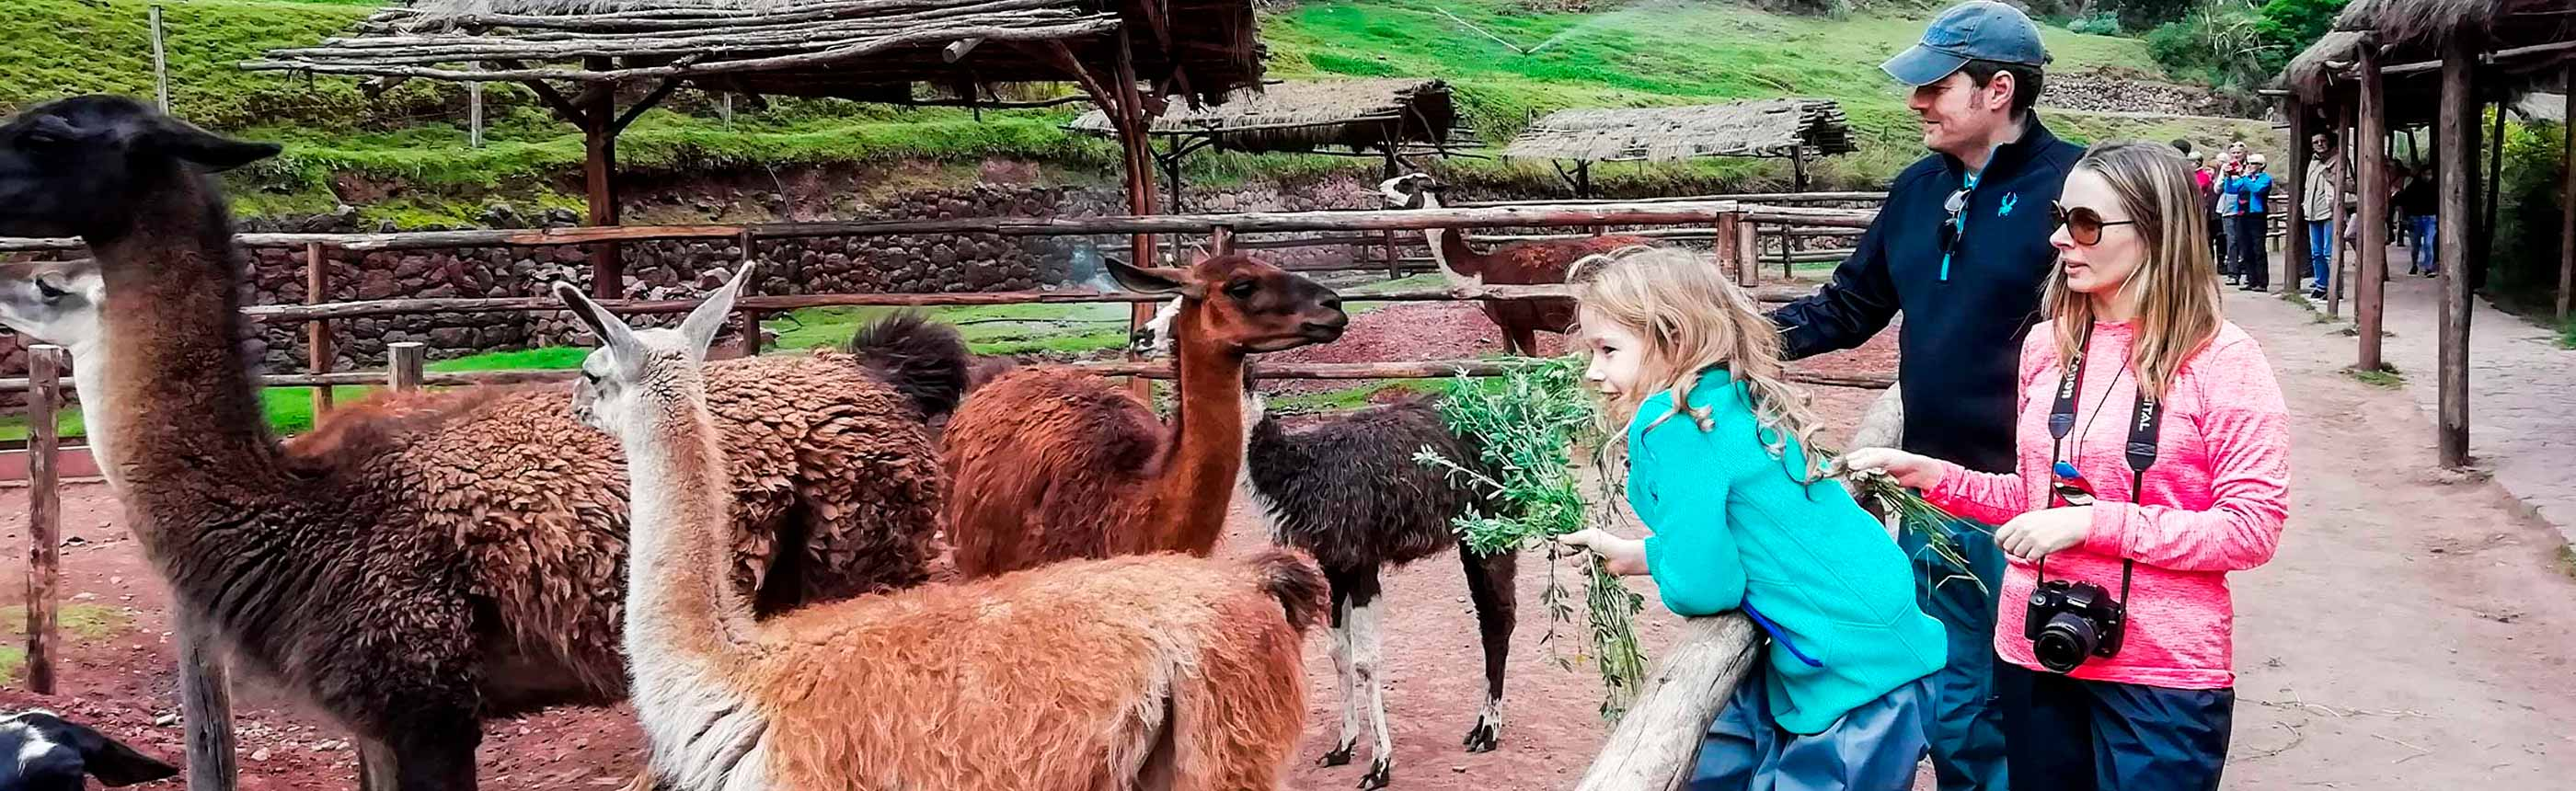 Visiting-Alpacas-Llamas-and-the-Weavers-of-Awana-Kancha